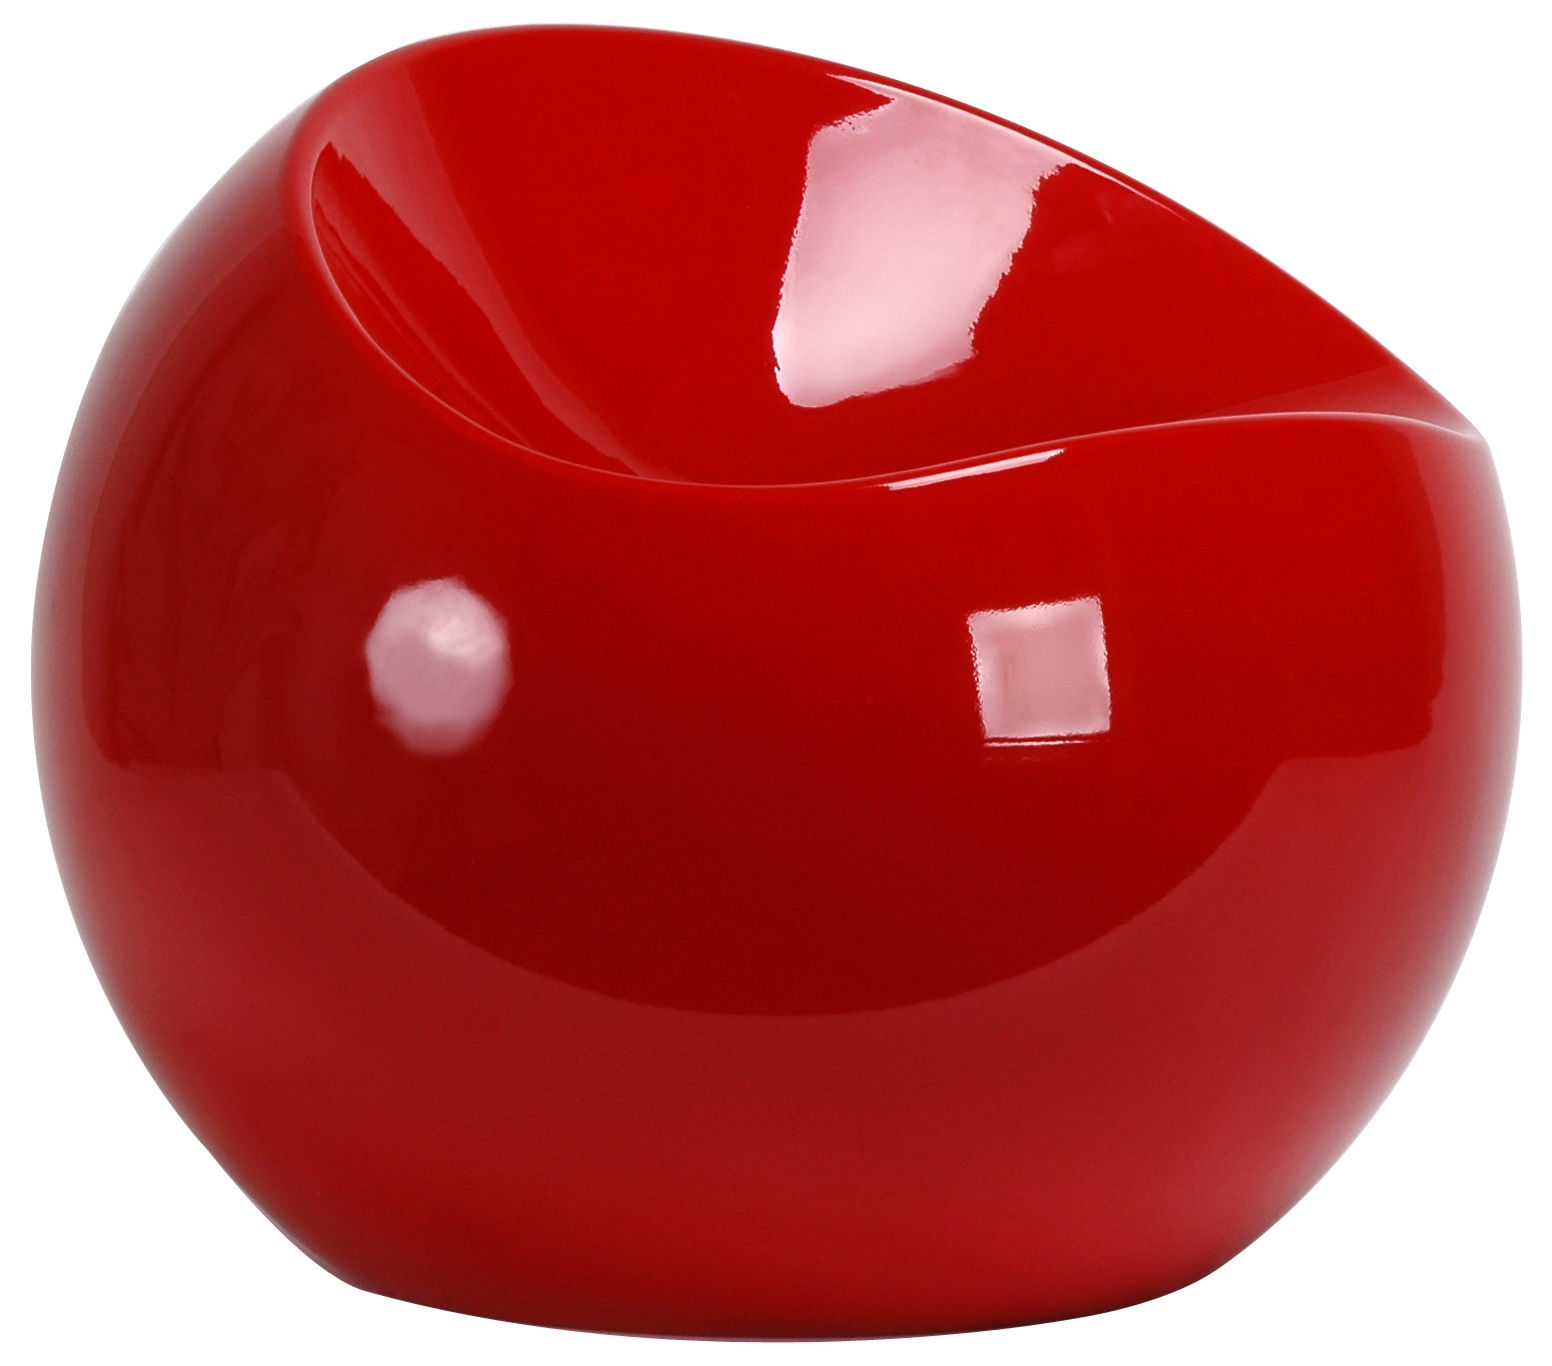 Mobilier - Mobilier Ados - Pouf Ball Chair - XL Boom - Rouge - ABS recyclé laqué